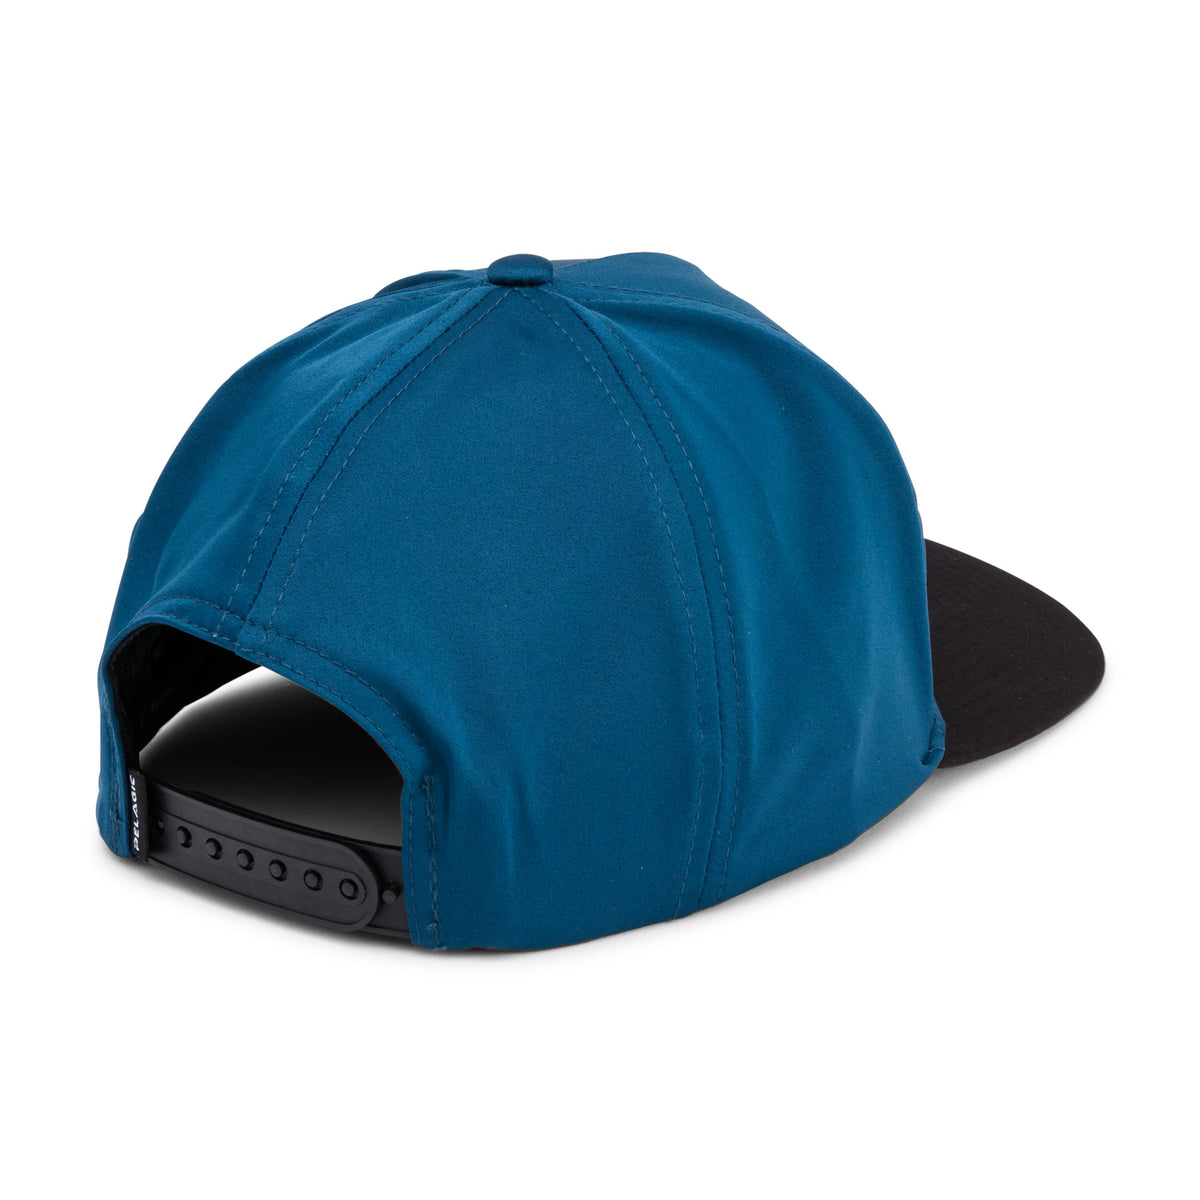 Swells Performance Snapback Hat Big Image - 2